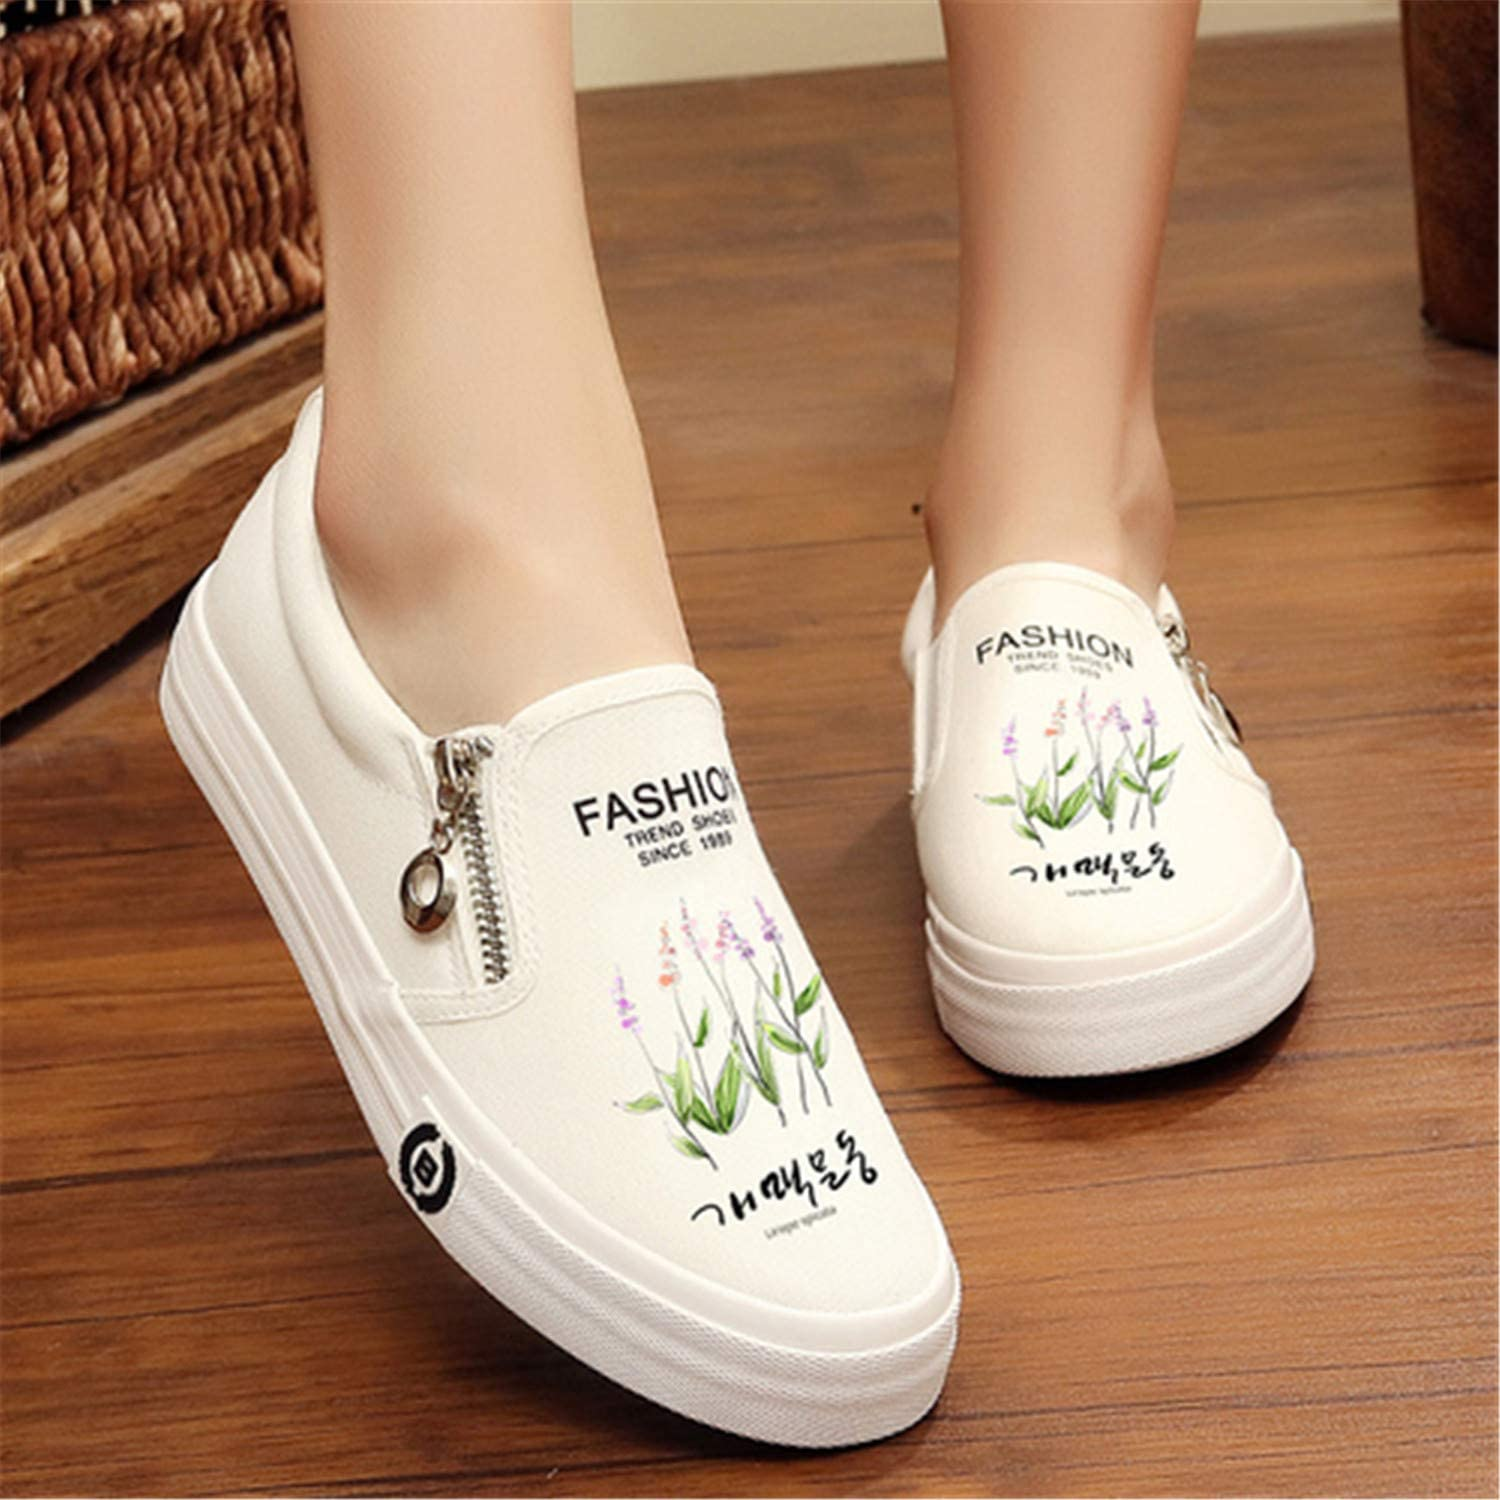 HAHUTG& Slip on Women's Platform shoes Summer 2019 Thick Heel Loafers Floral Canvas shoes Women Espadrilles White Black White Small Floral 4